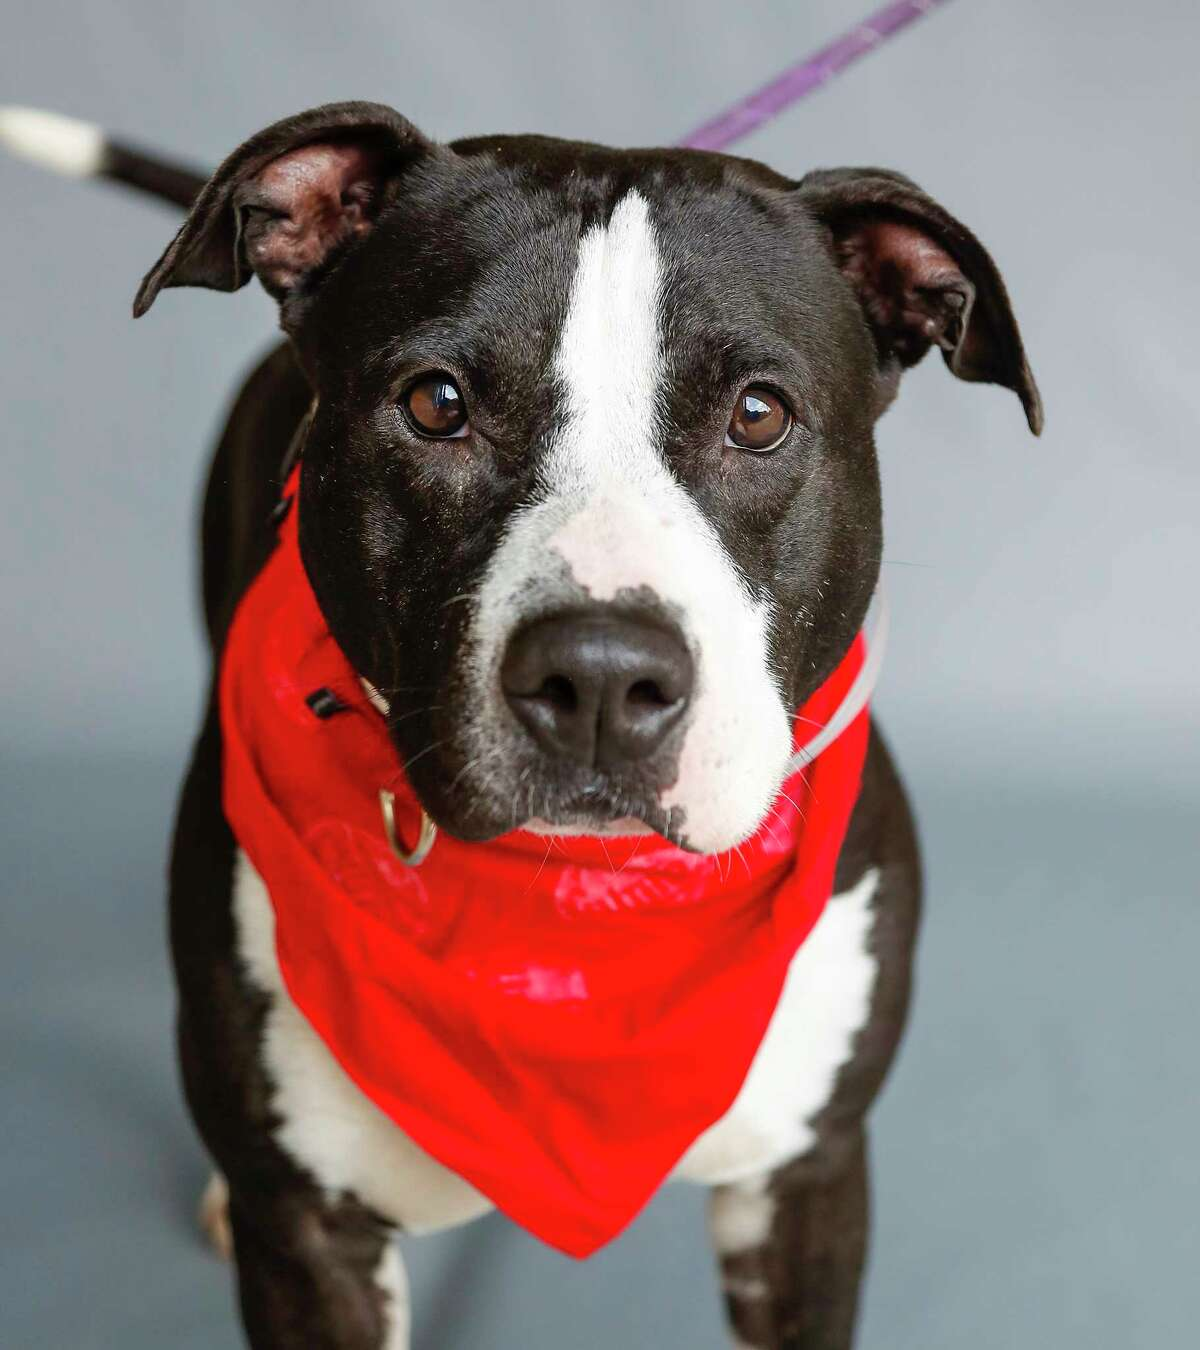 Re Peete (A1585913) is a 2-year-old, male, Staffordshire mix who is another staff favorite at BARC. He was rescued along with 21 other dogs that were found living at a single home that officials describe as a hoarding situation. According to shelter officials, he loves playing with dogs of all sizes and